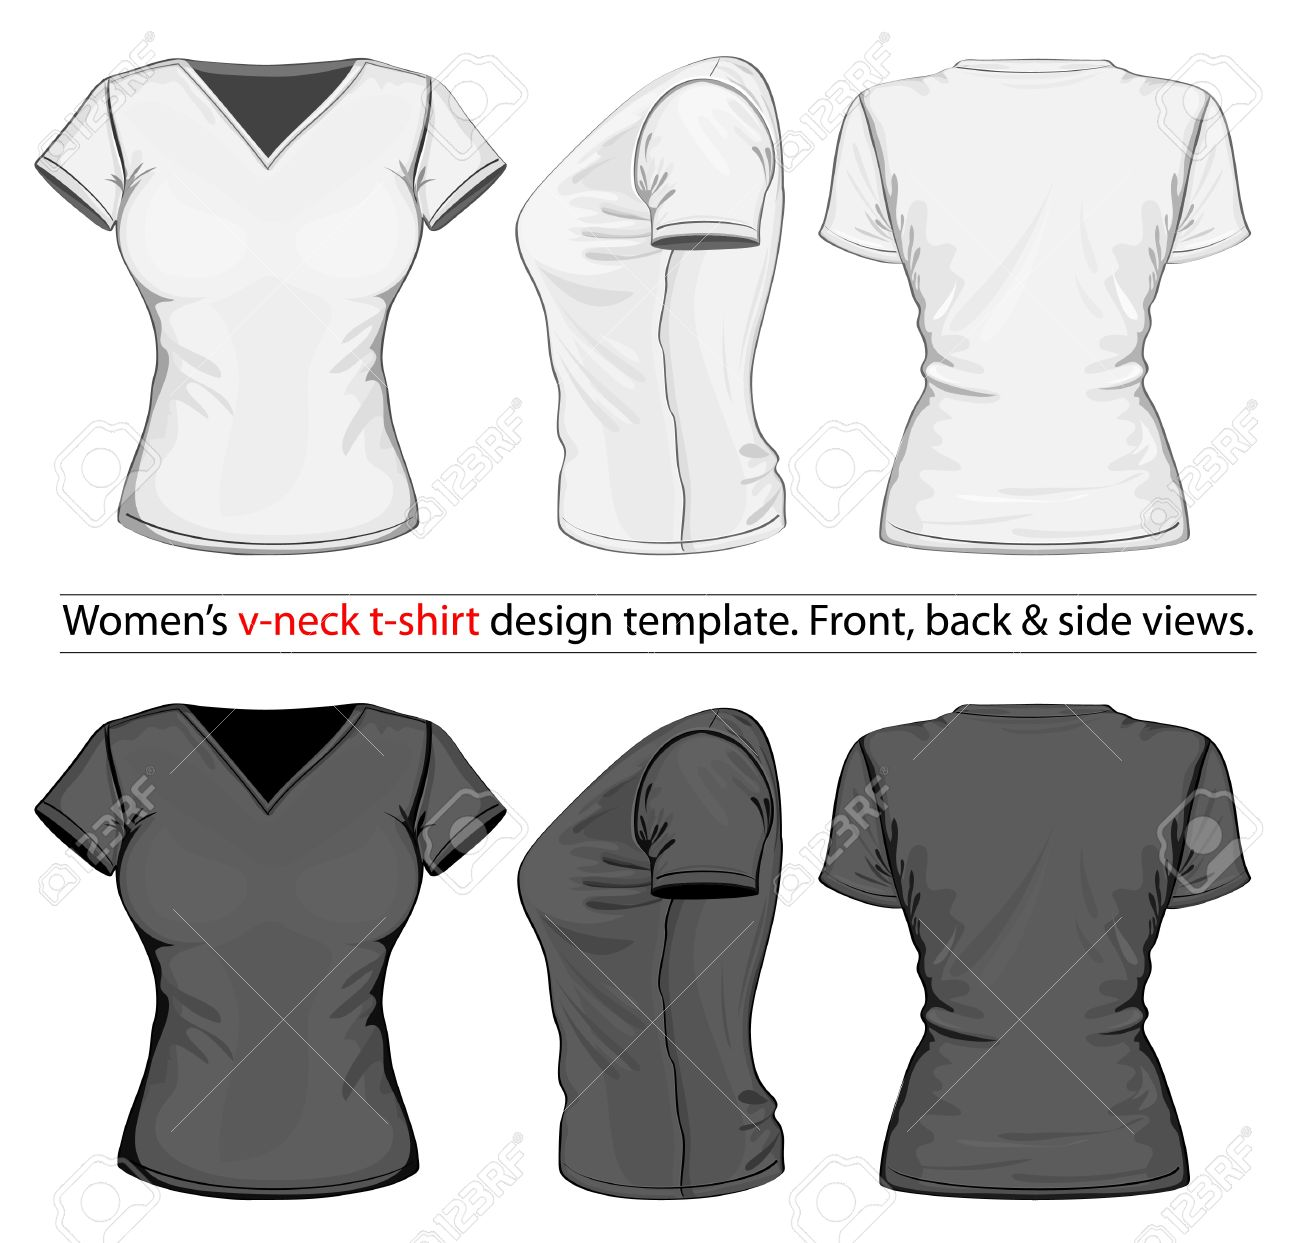 Black t shirt vector front and back - Vector Women S V Neck T Shirt Design Template Front Back And